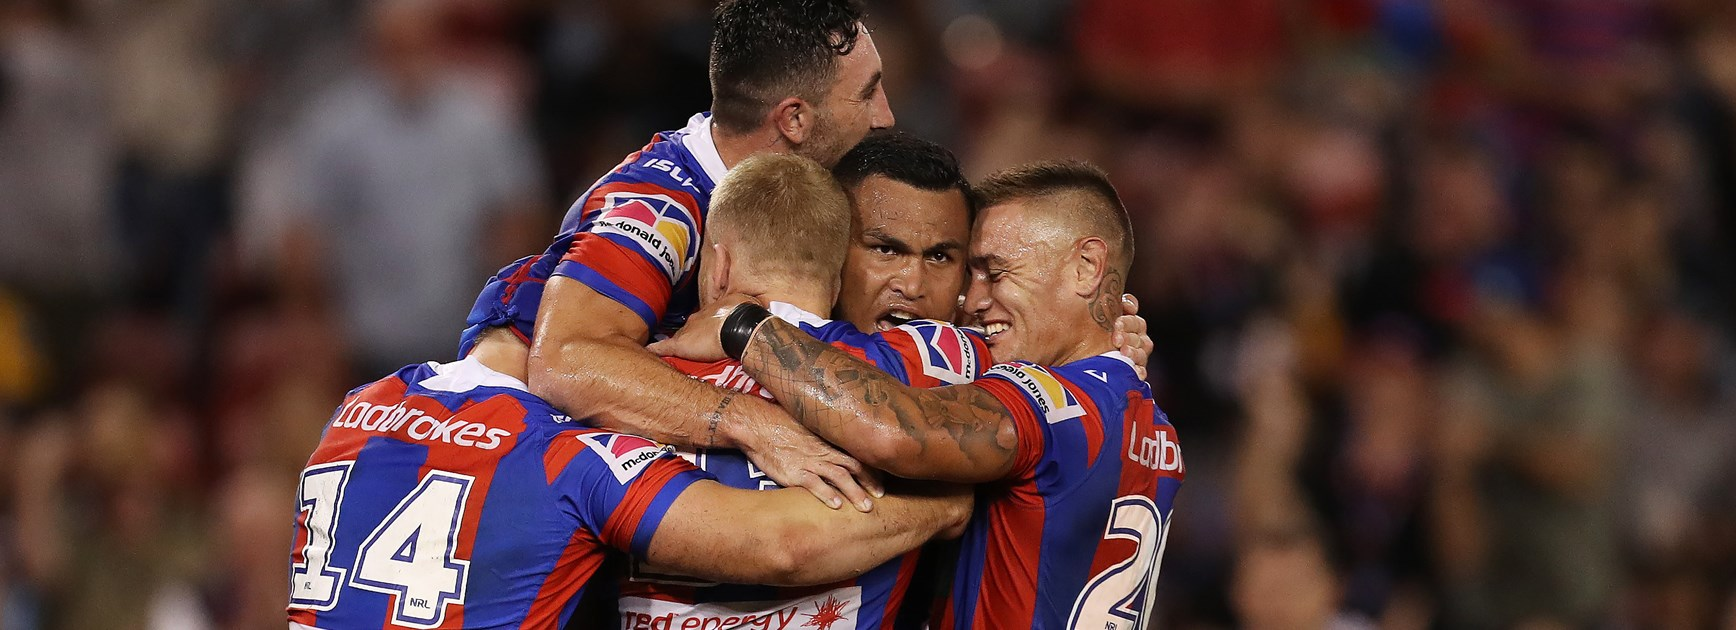 Knights charge into top eight with win over Broncos